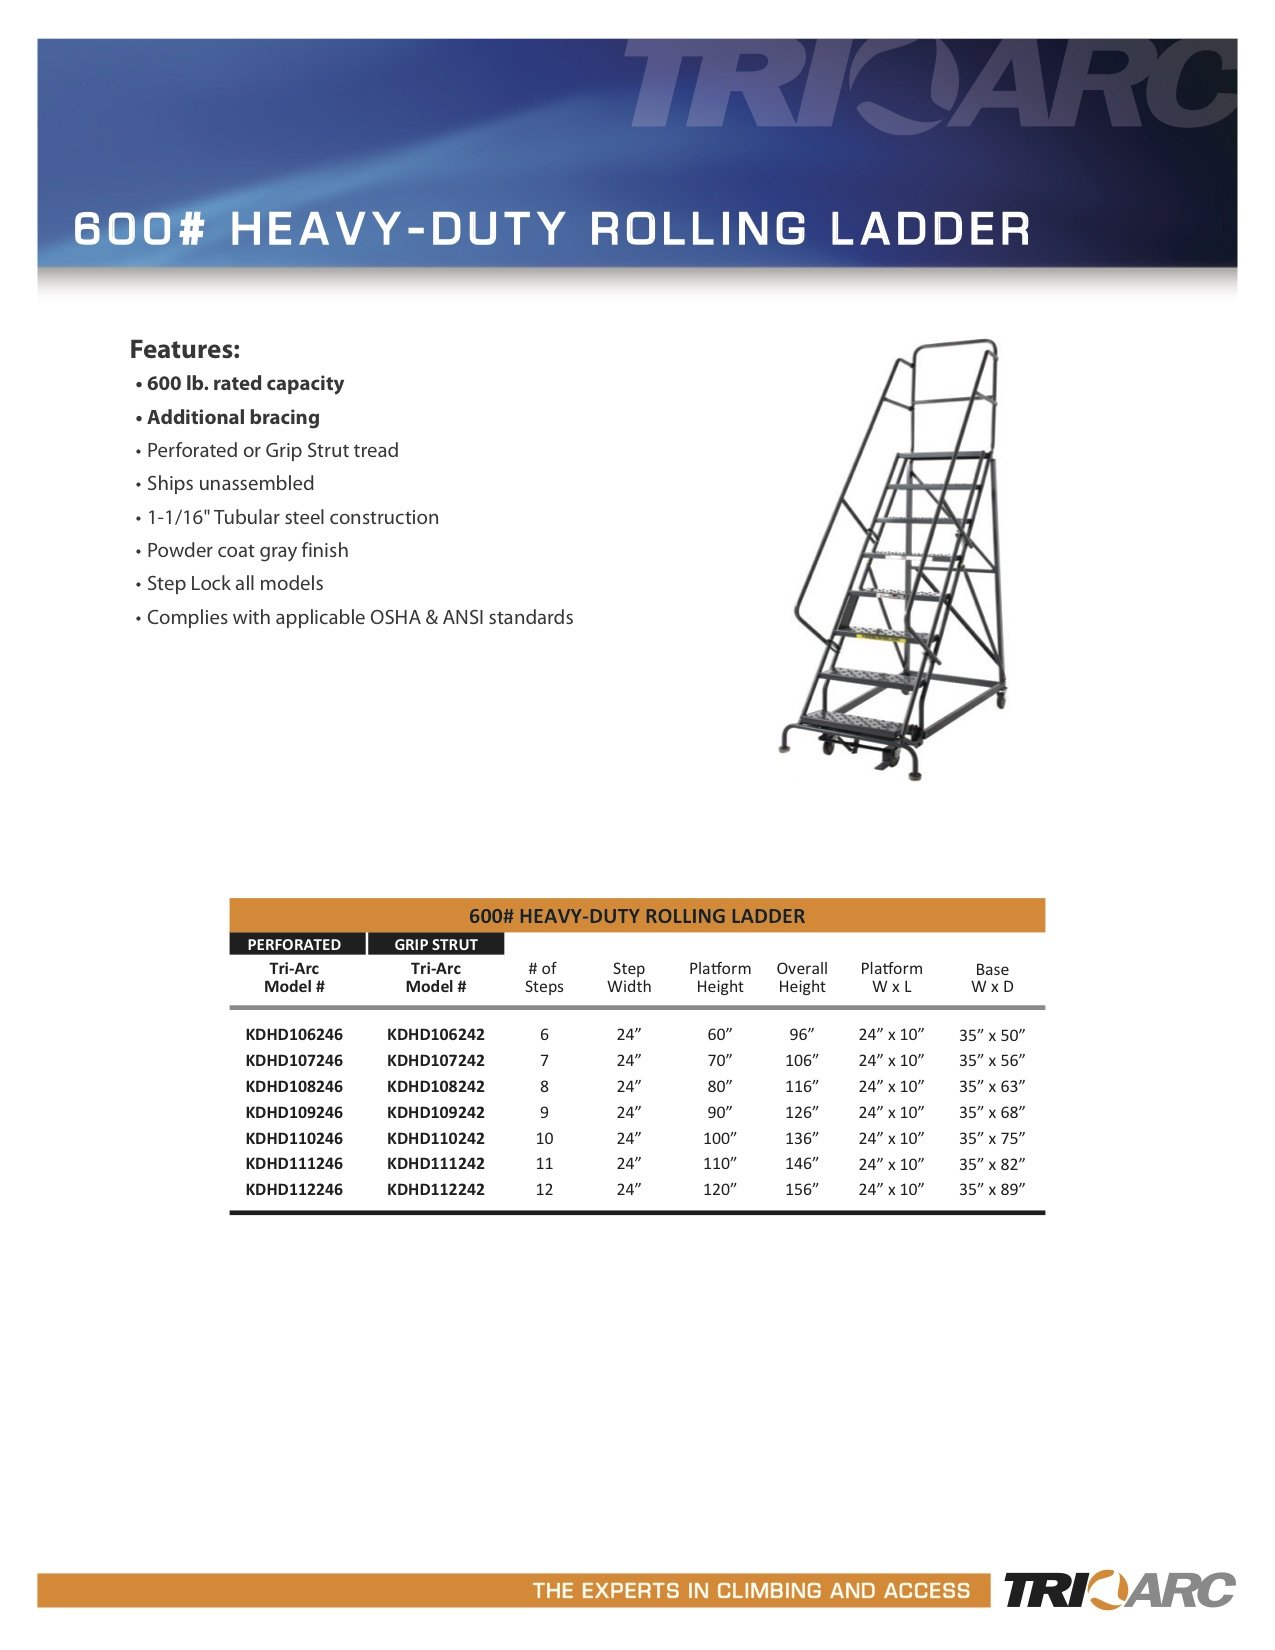 Tri-Arc KDHD108242 8-Step Heavy-Duty Steel Rolling Industrial & Warehouse Ladder with Grip Strut Tread